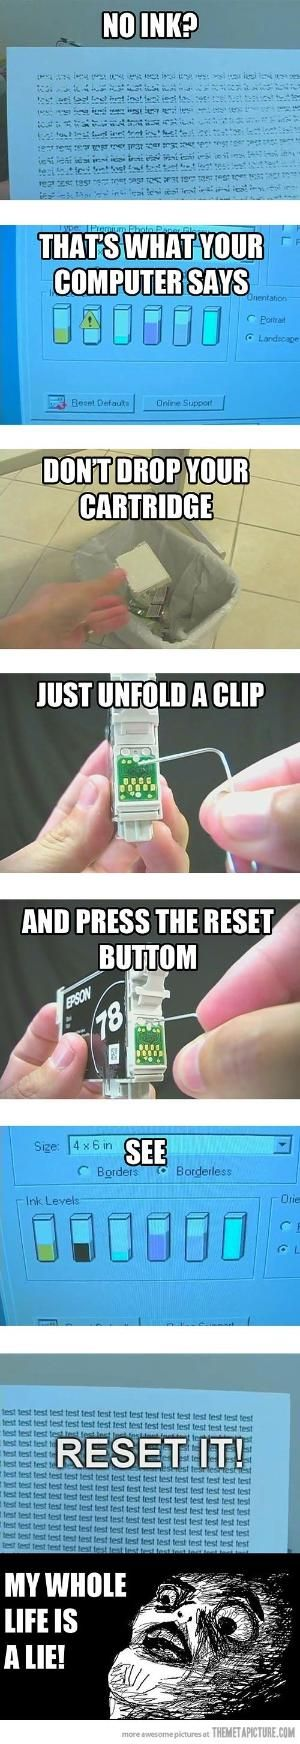 Is this even work??  Reset ink cartridges